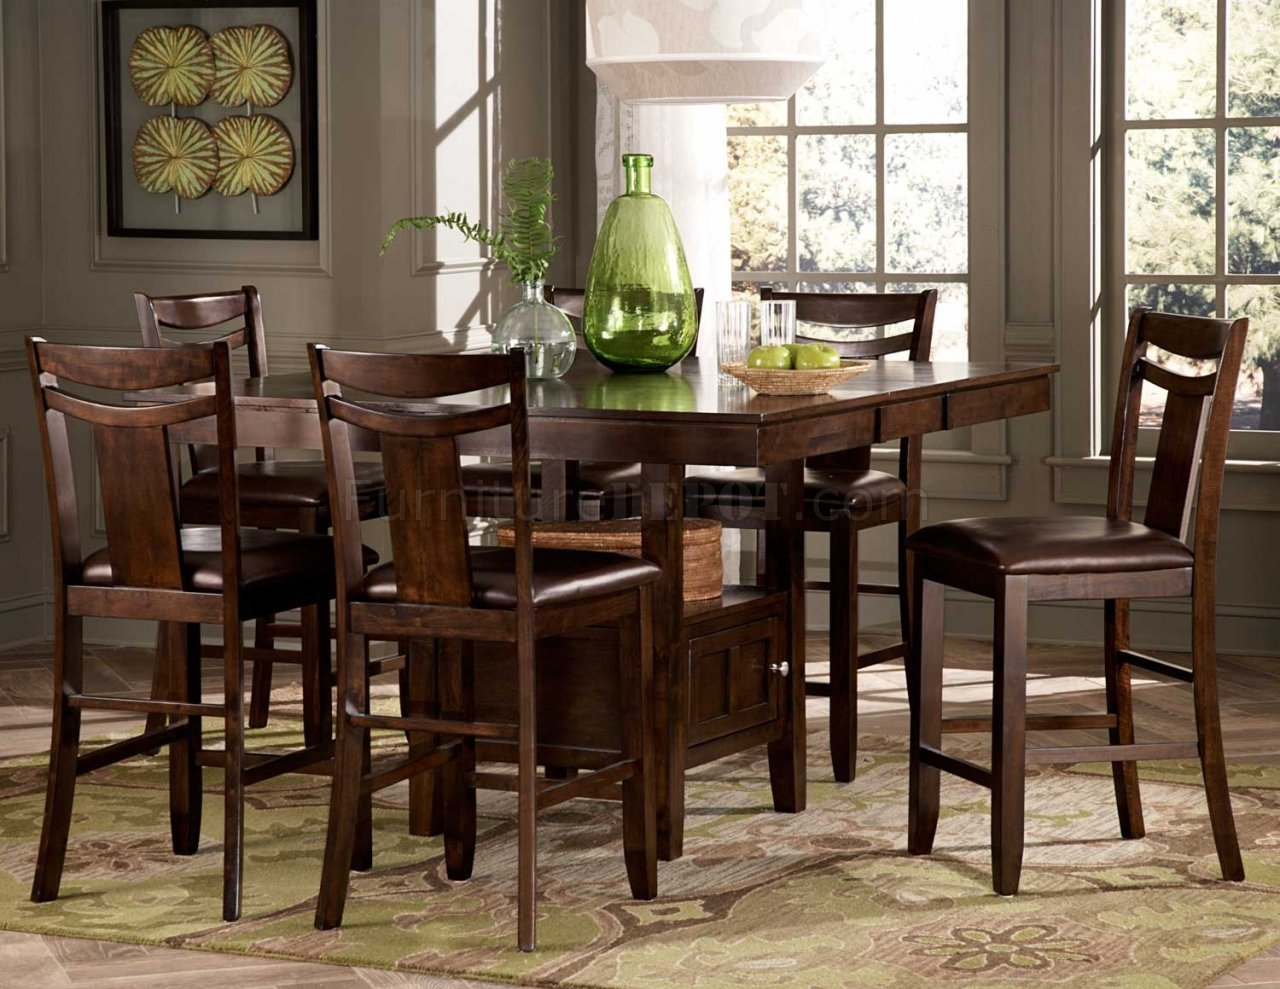 Broome 2524 36 Counter Height Dining 5pc Set By Homelegance